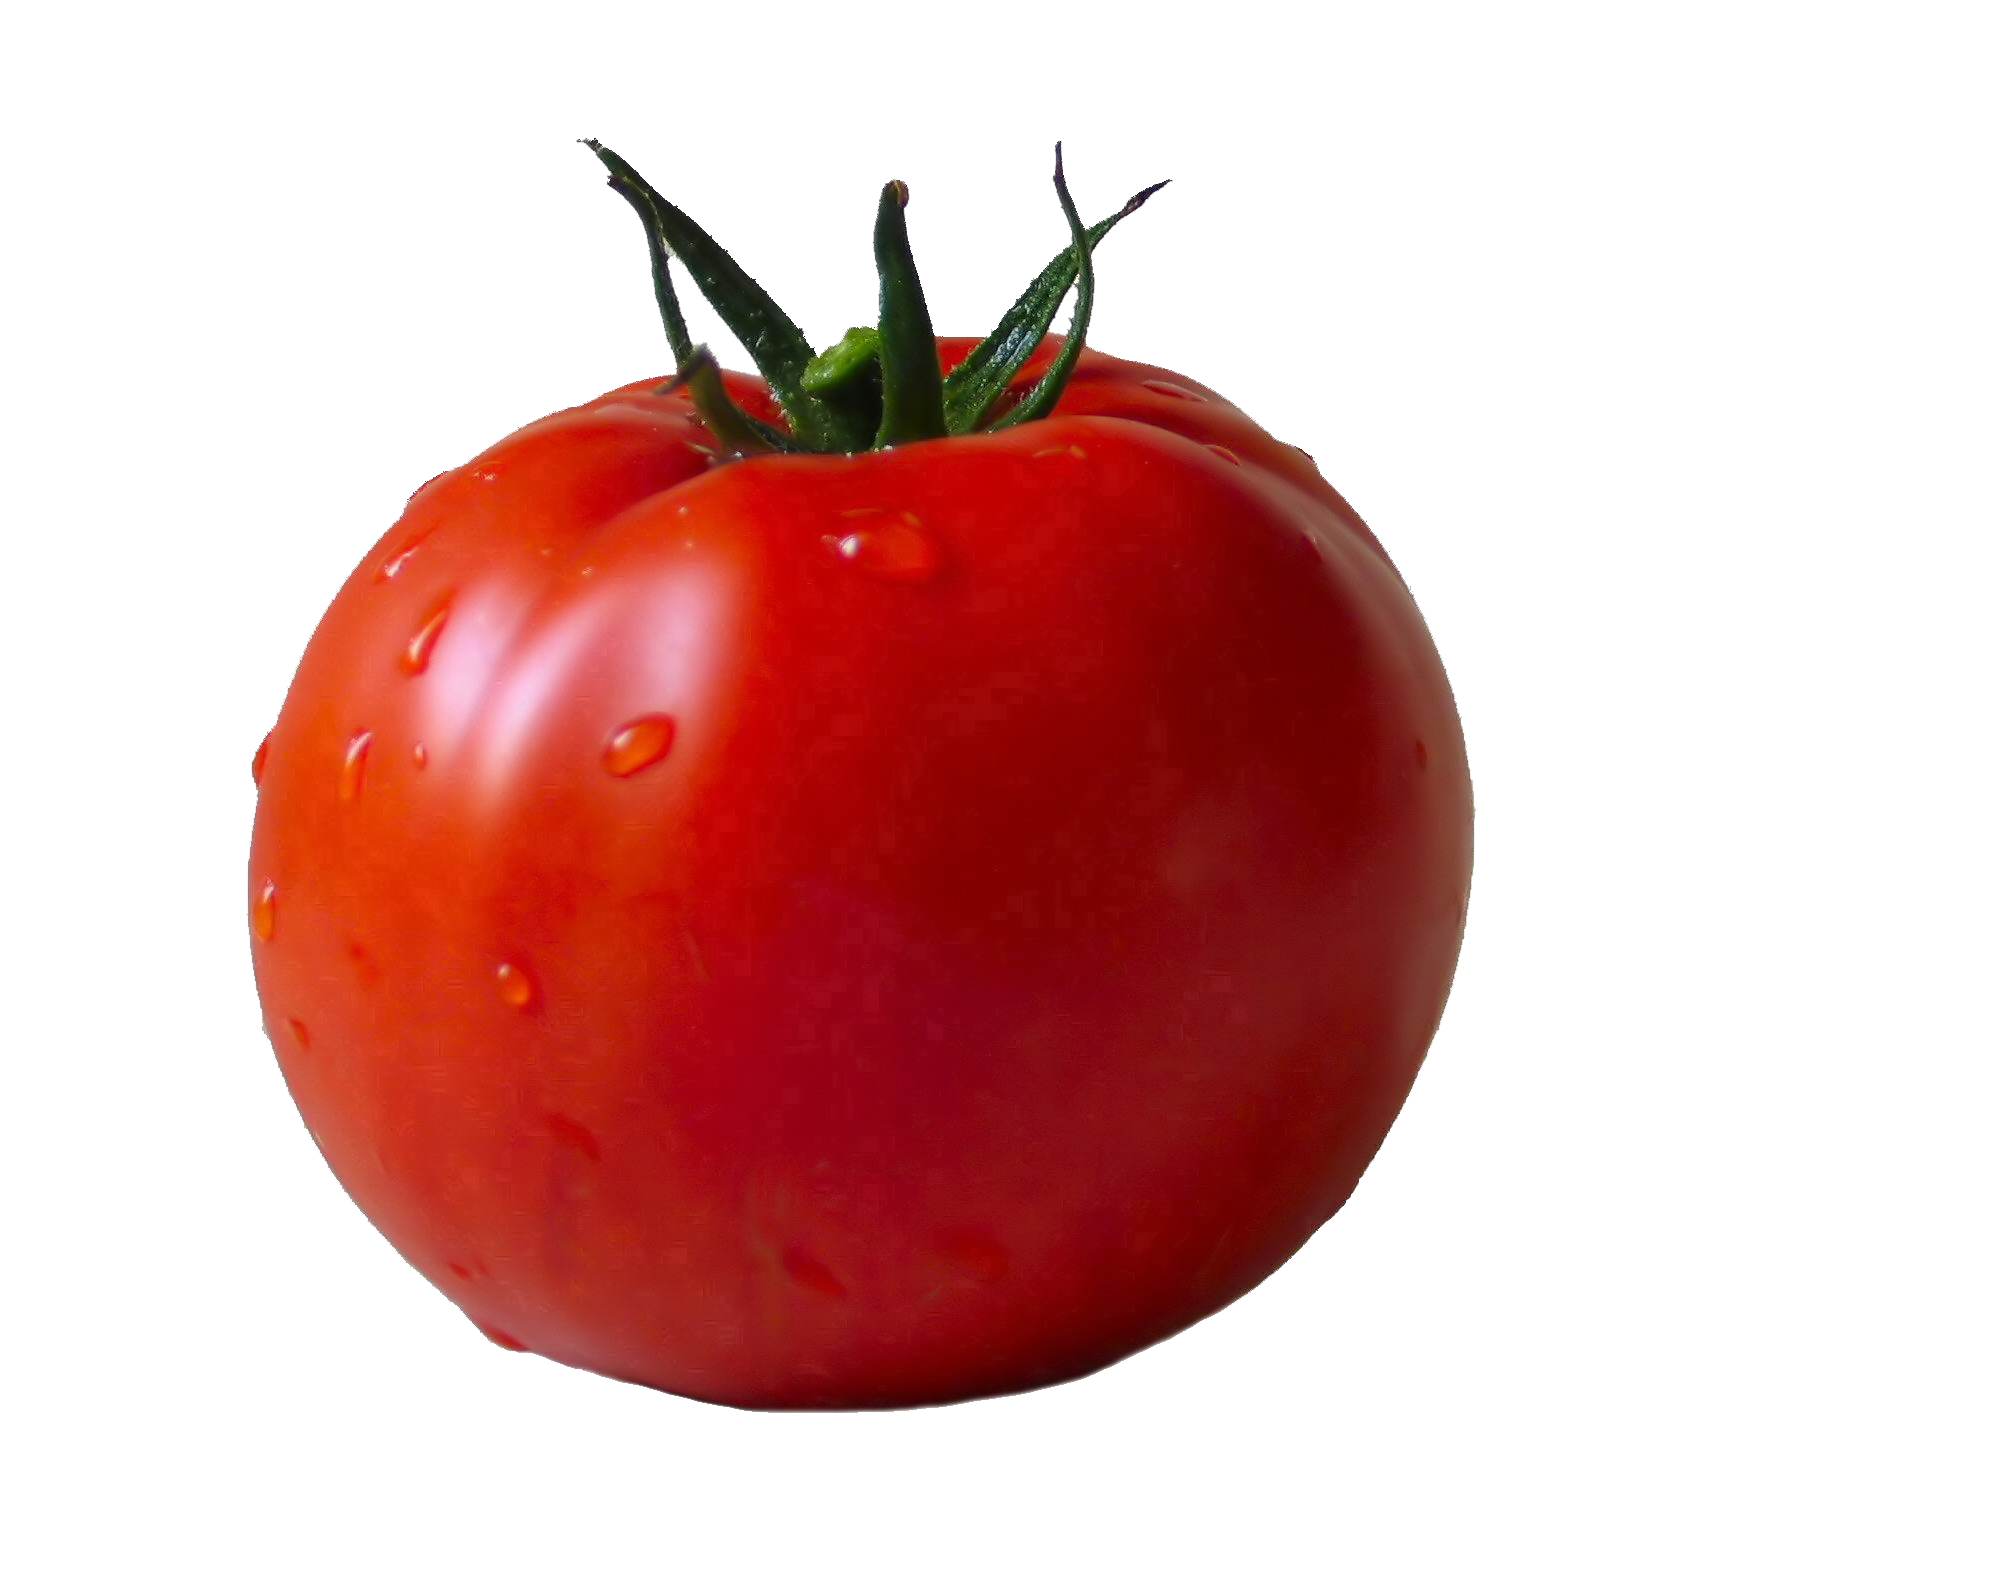 Tomato PNG - 4799